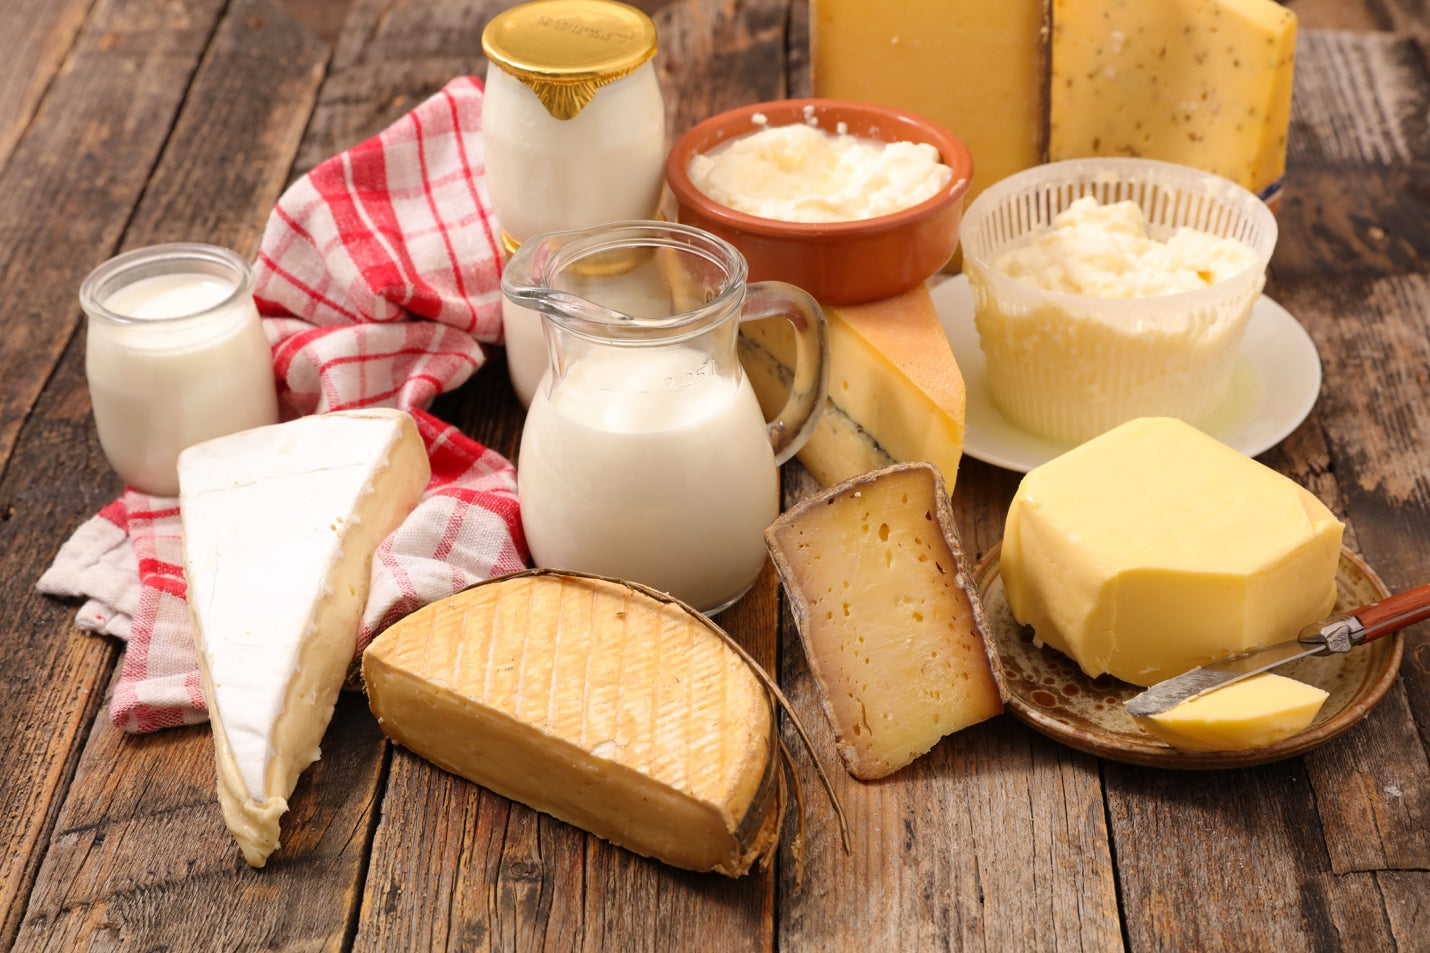 Different dairy products on a wood table